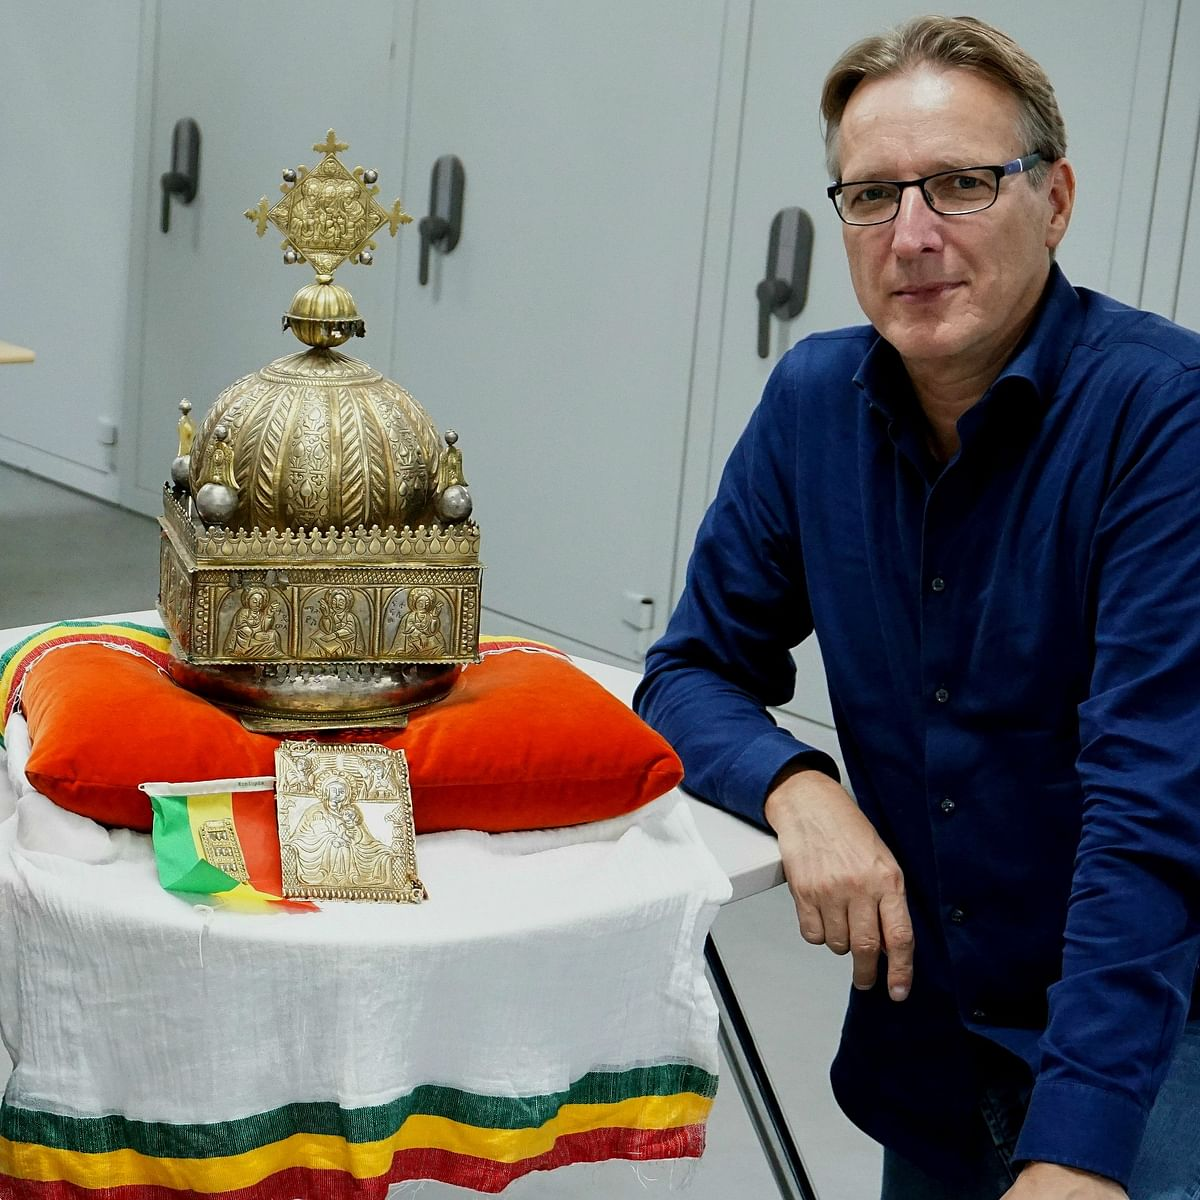 Hidden for 21 years: Ethiopian crown to return home from Netherlands